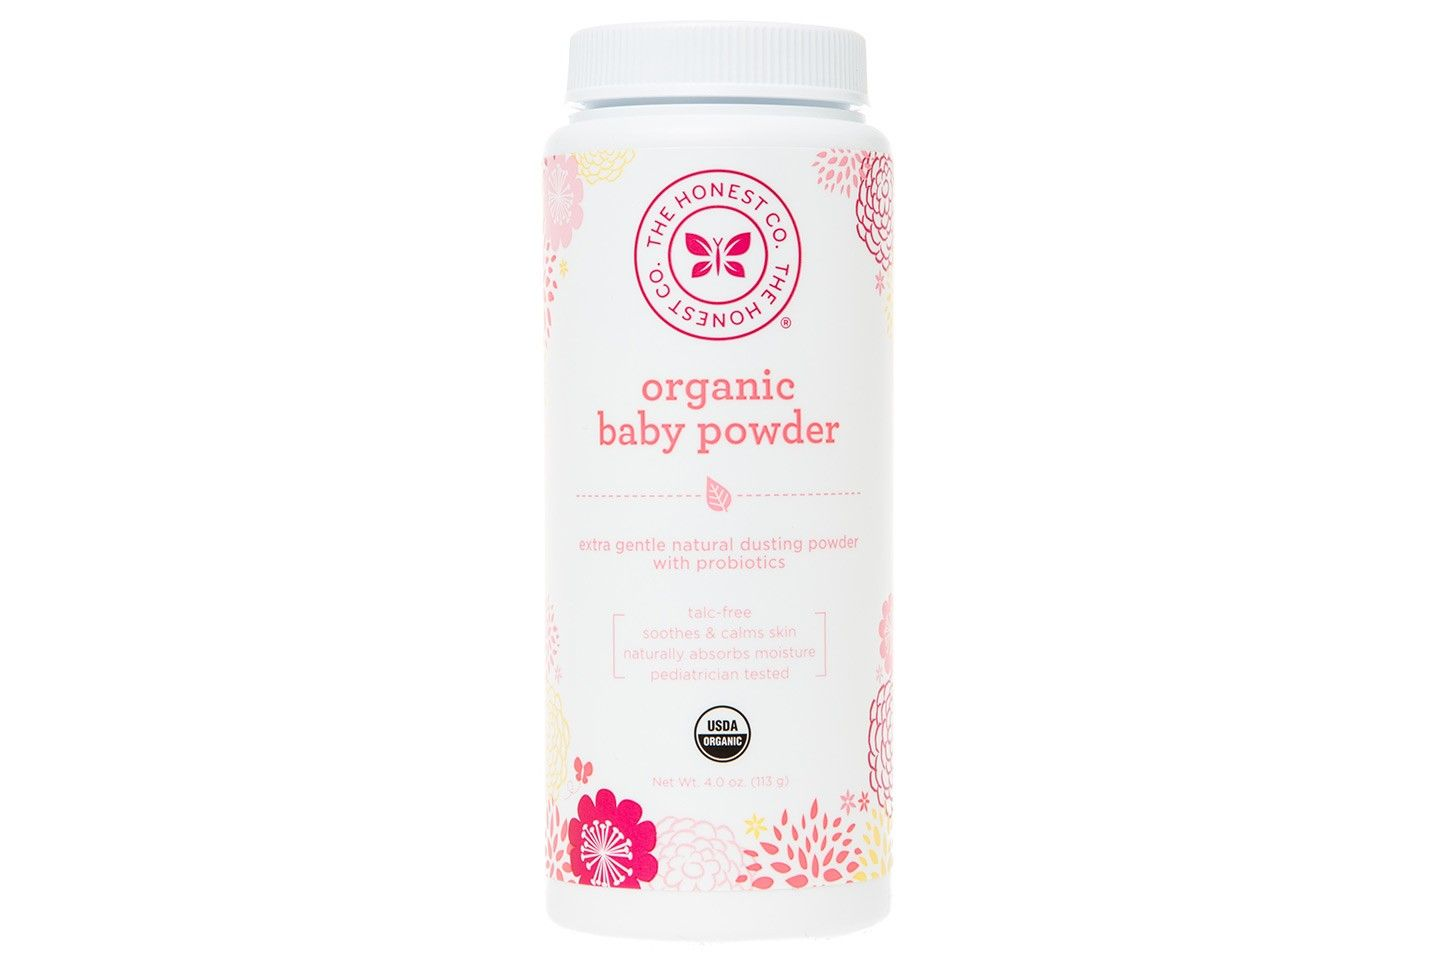 2b4a5d0e91619 Organic Baby Powder | Natural Dusting Powder With Probiotics | The ...